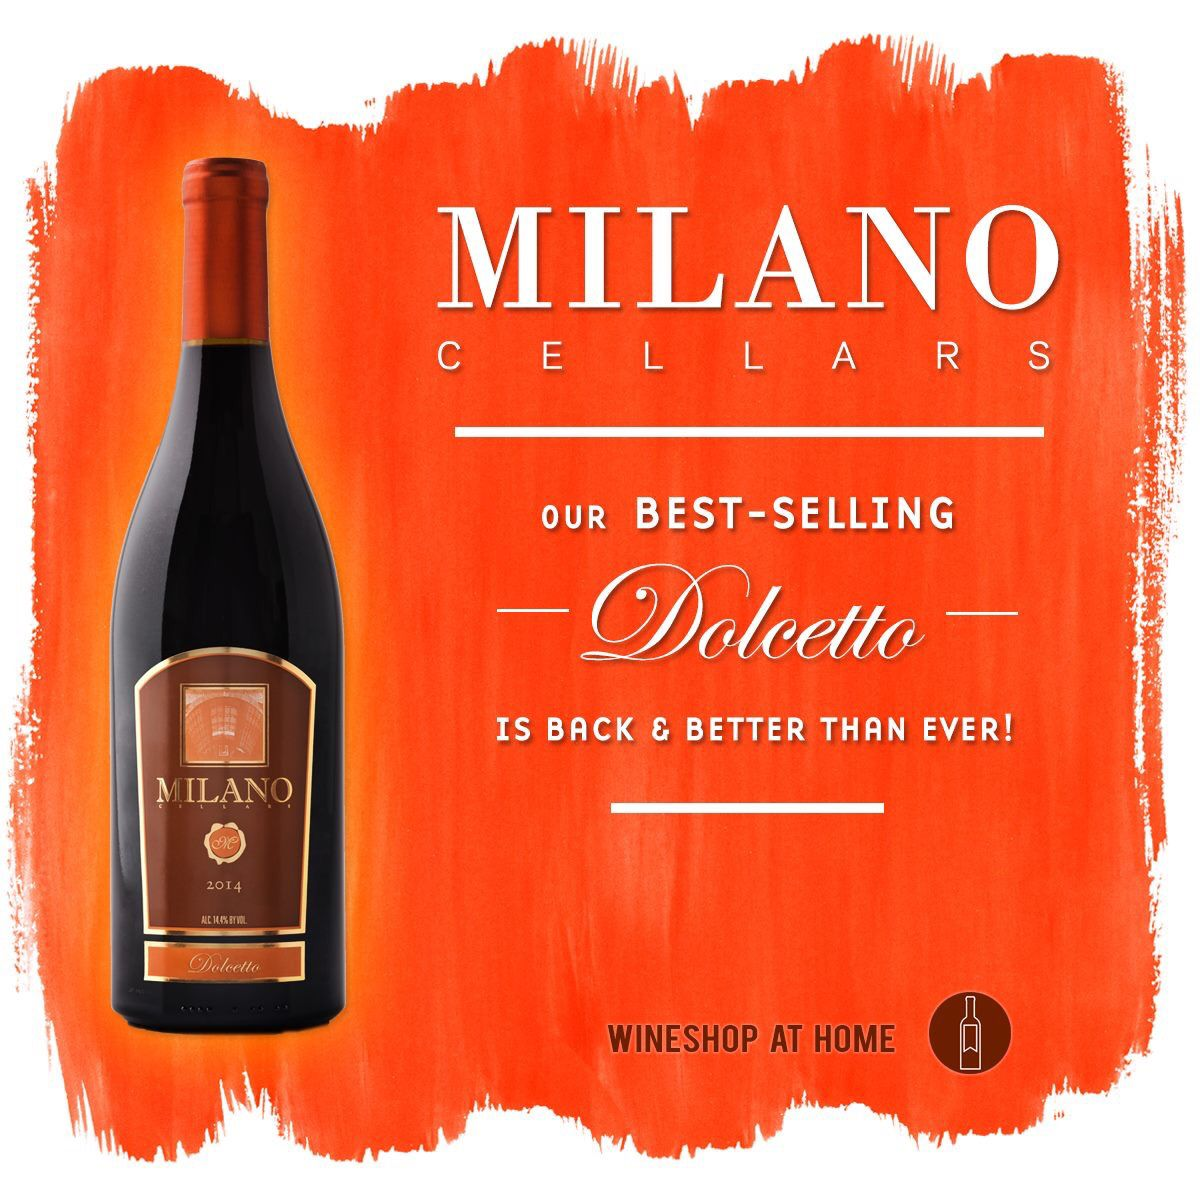 It S Here Our Most Popular Wine The Milano Cellars Dolcetto Is Back And Better Than Ever Dolcetto Means Little Wine Drinks Wine Shop At Home Buy Wine